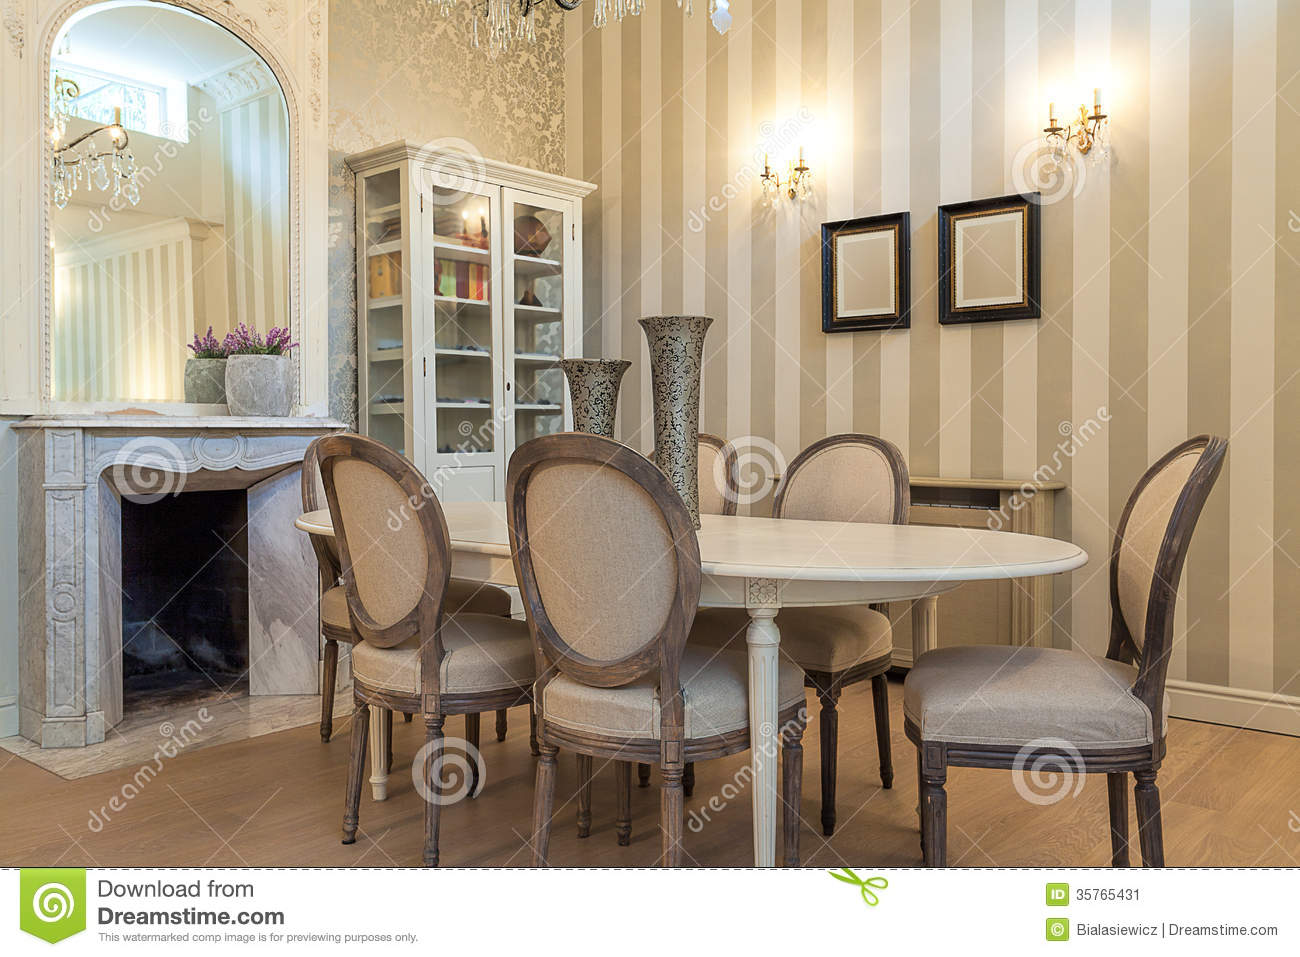 manoir de vintage table de salle manger image stock image 35765431. Black Bedroom Furniture Sets. Home Design Ideas